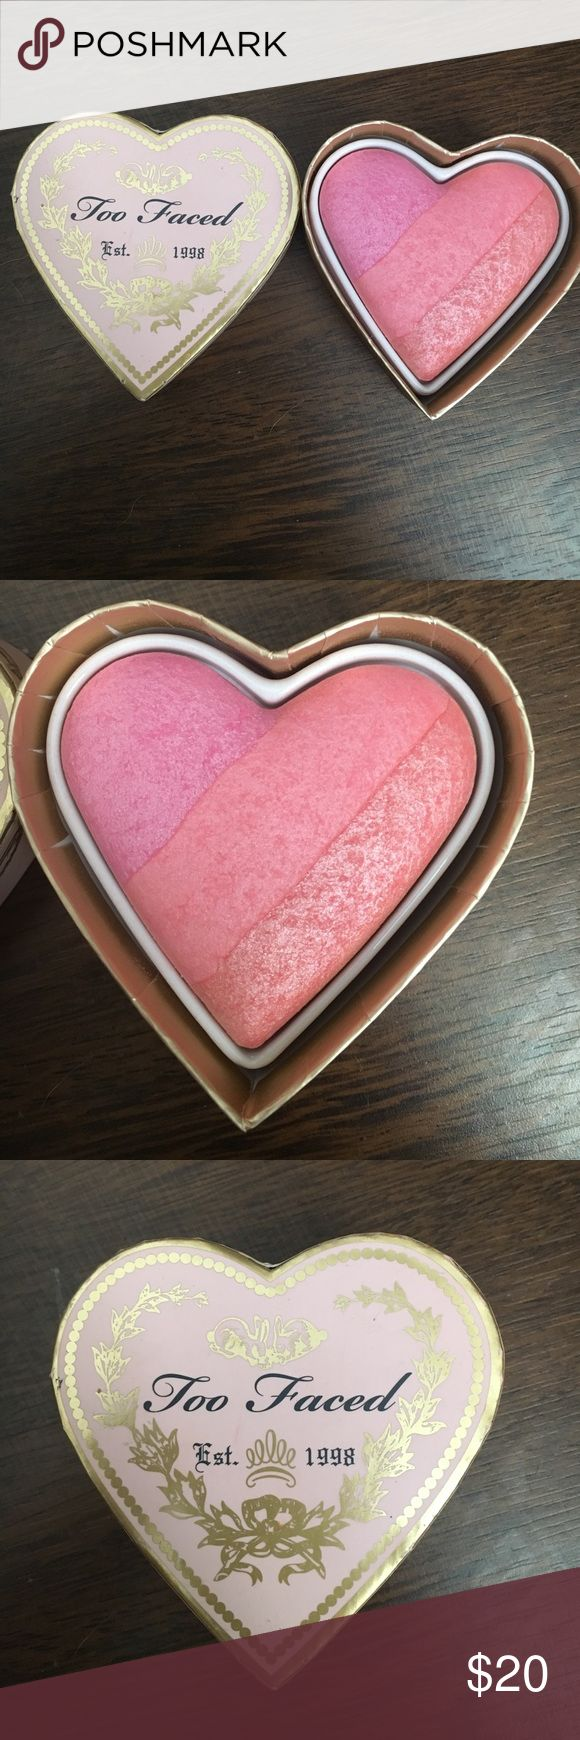 Best 20+ Too faced blush ideas on Pinterest | Too faced makeup ...